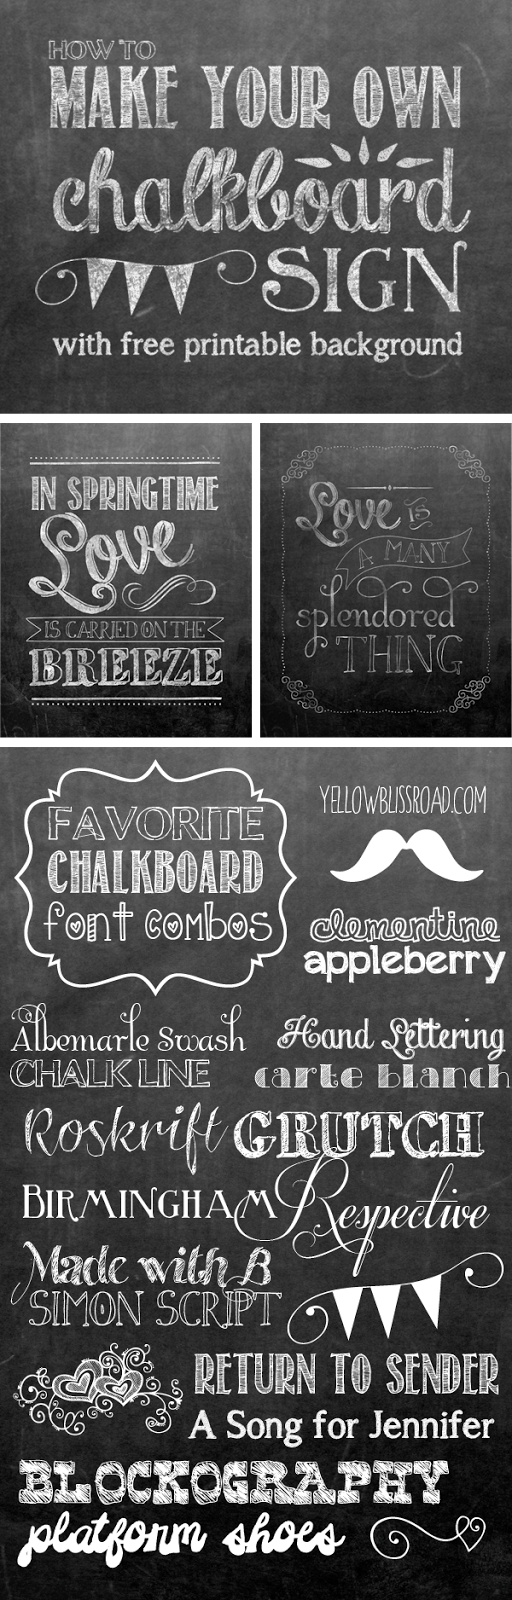 how to make your own printable chalkboard sign font combos door tips for making your own chalkboard sign chalkboard font combos and a printable